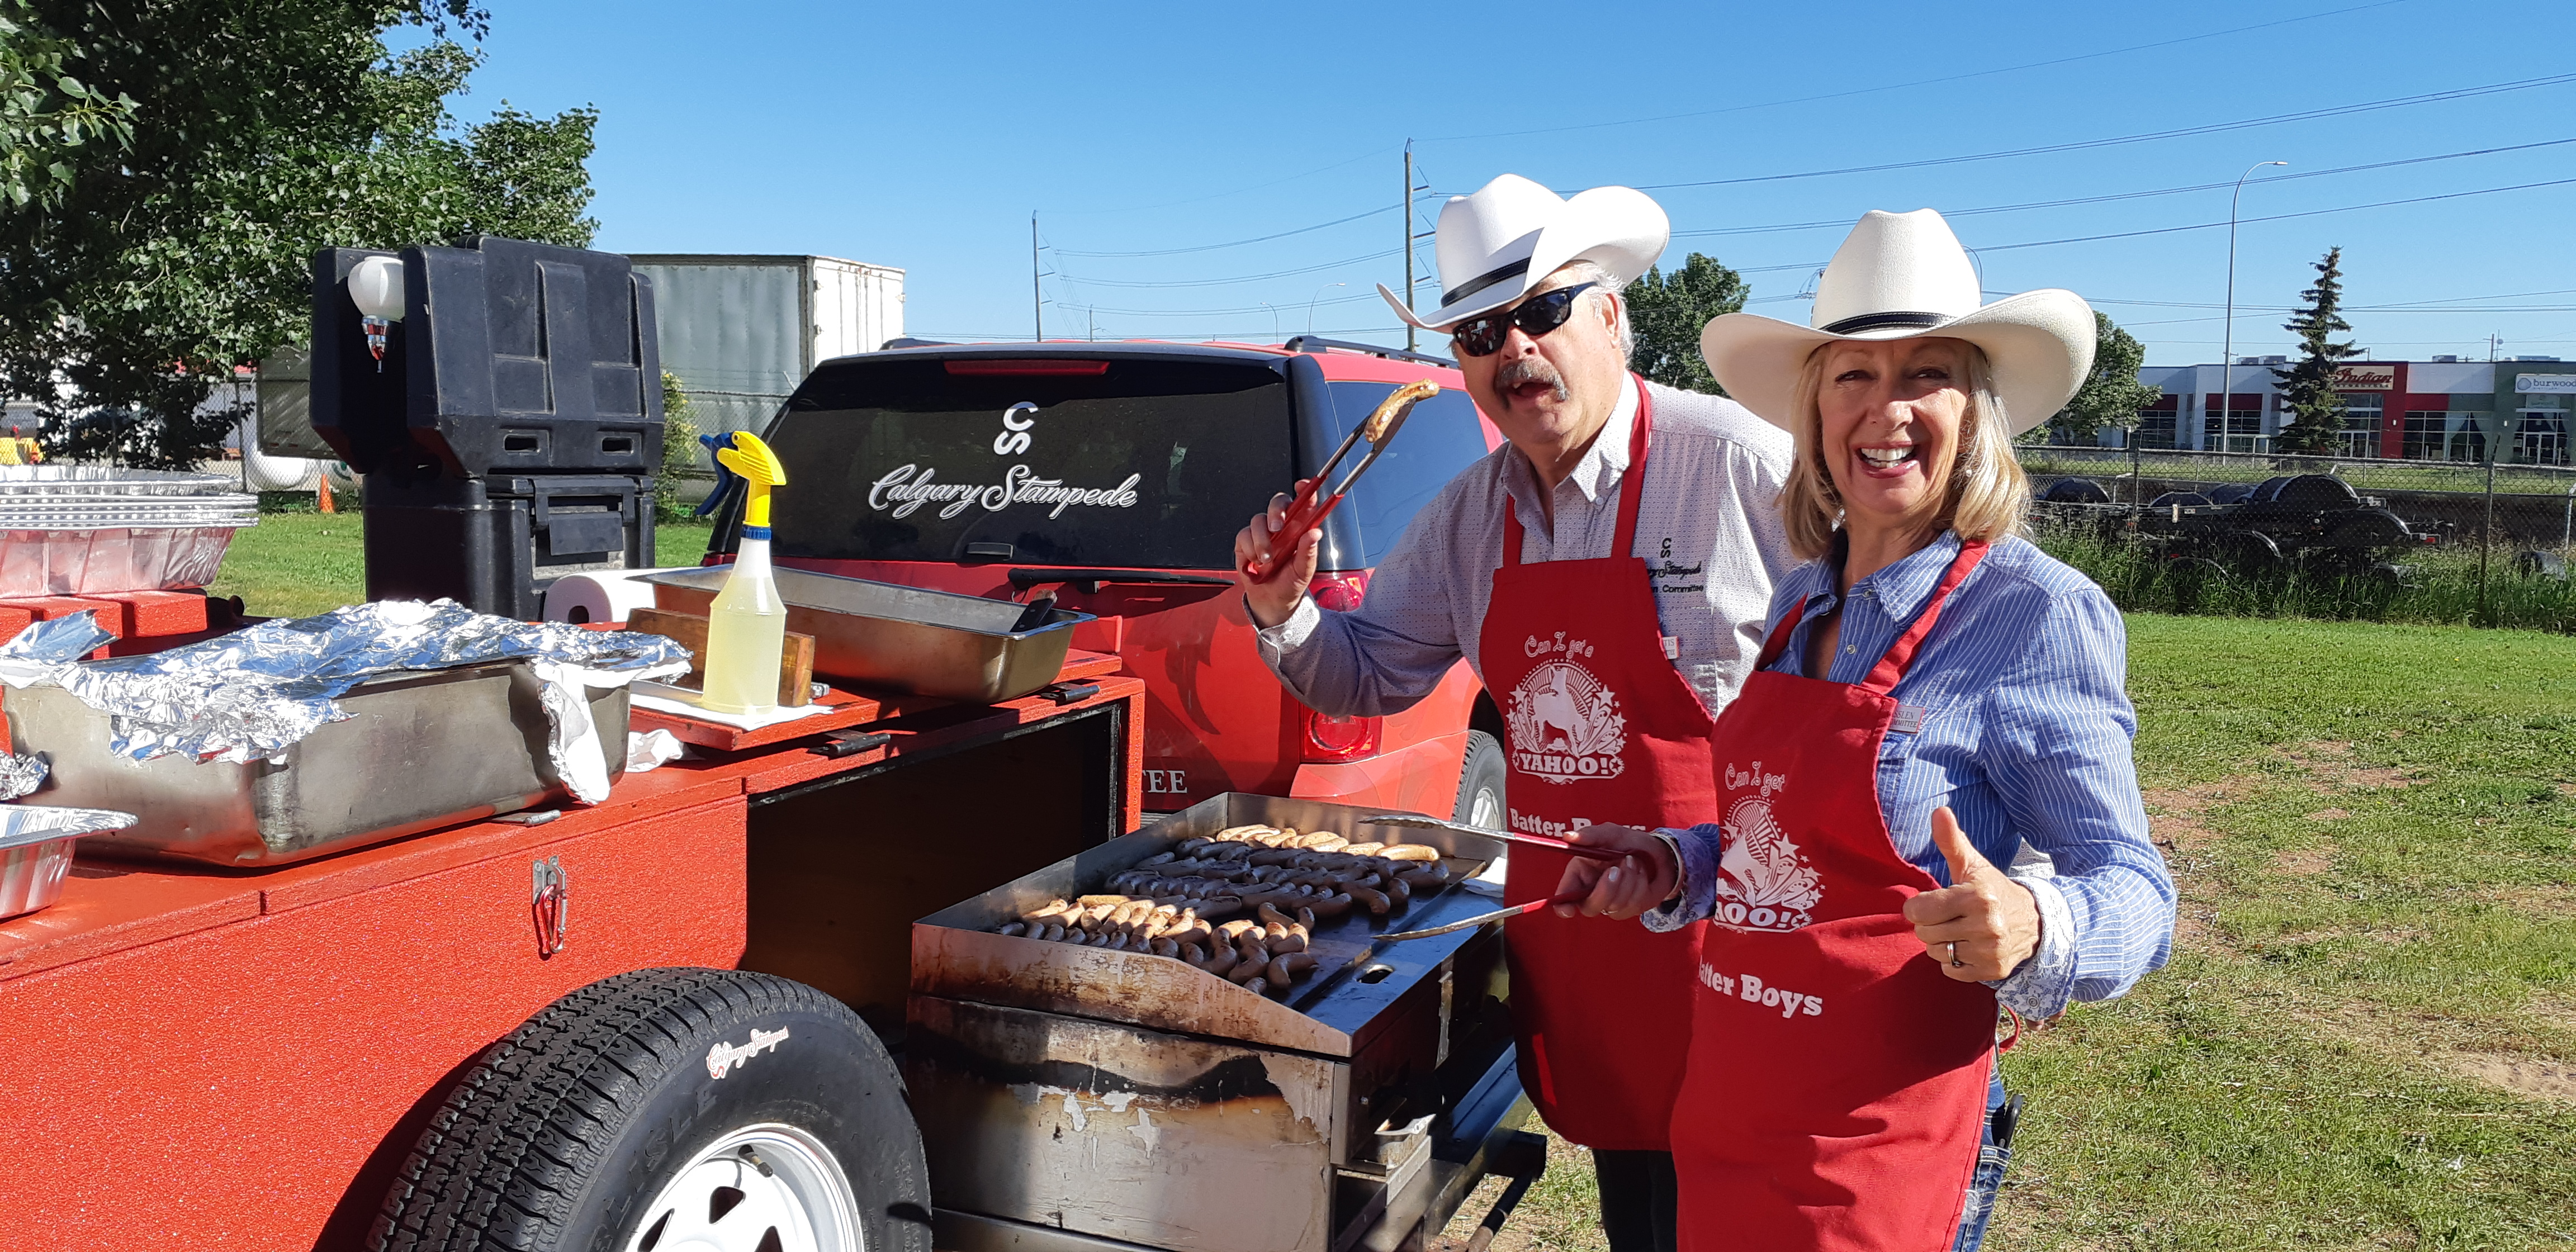 Free Stampede Breakfast By The Batter Boys And A Live Band